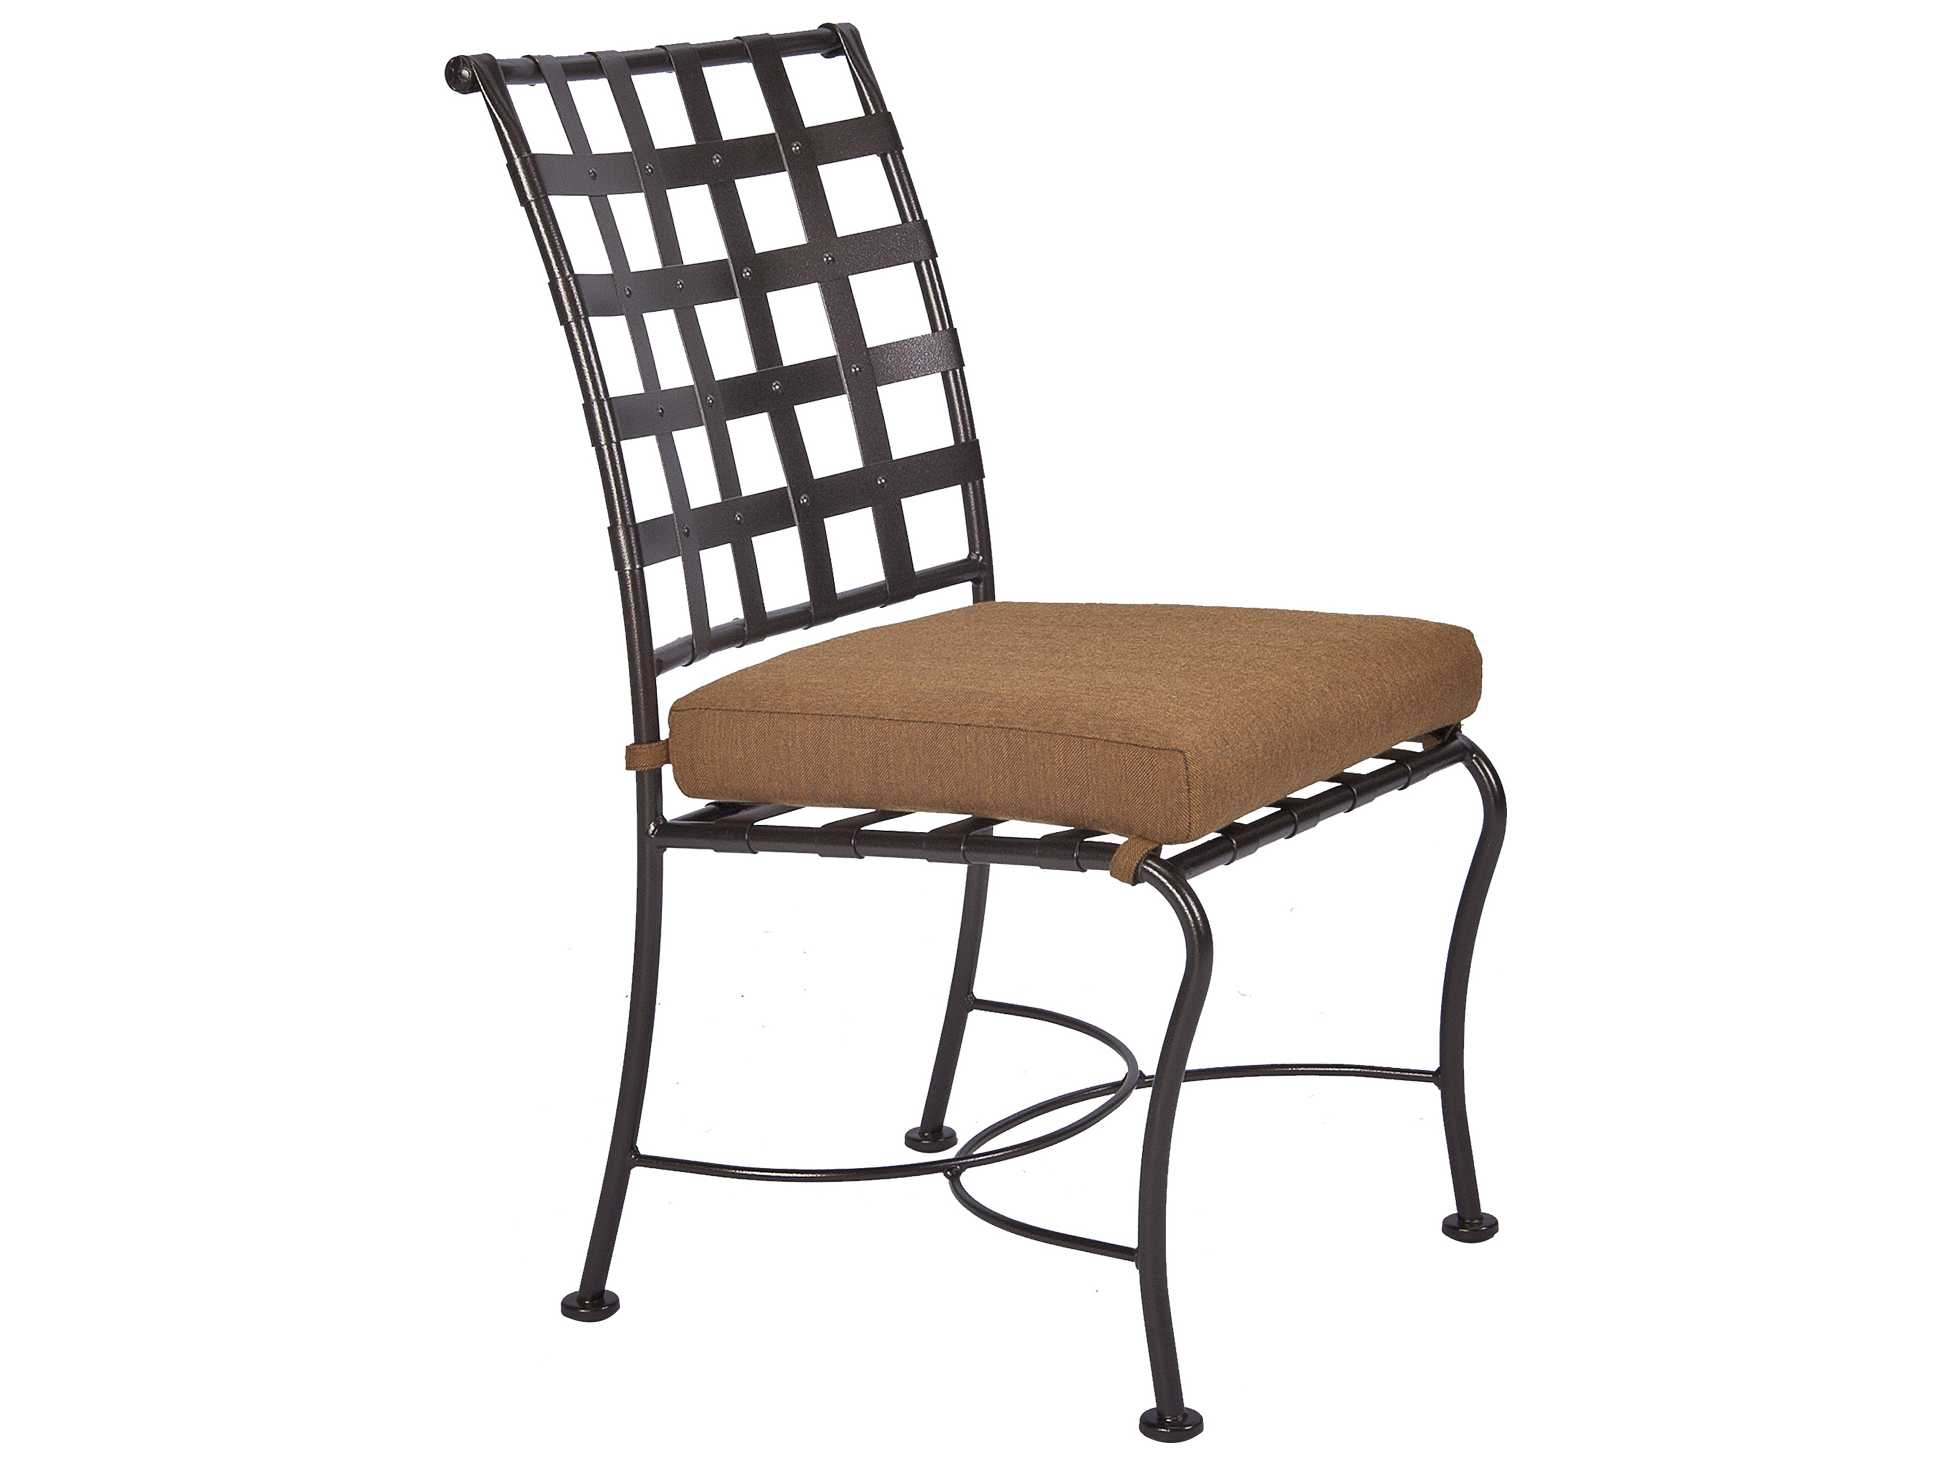 OW Lee Classico Wrought Iron Dining Side Chair